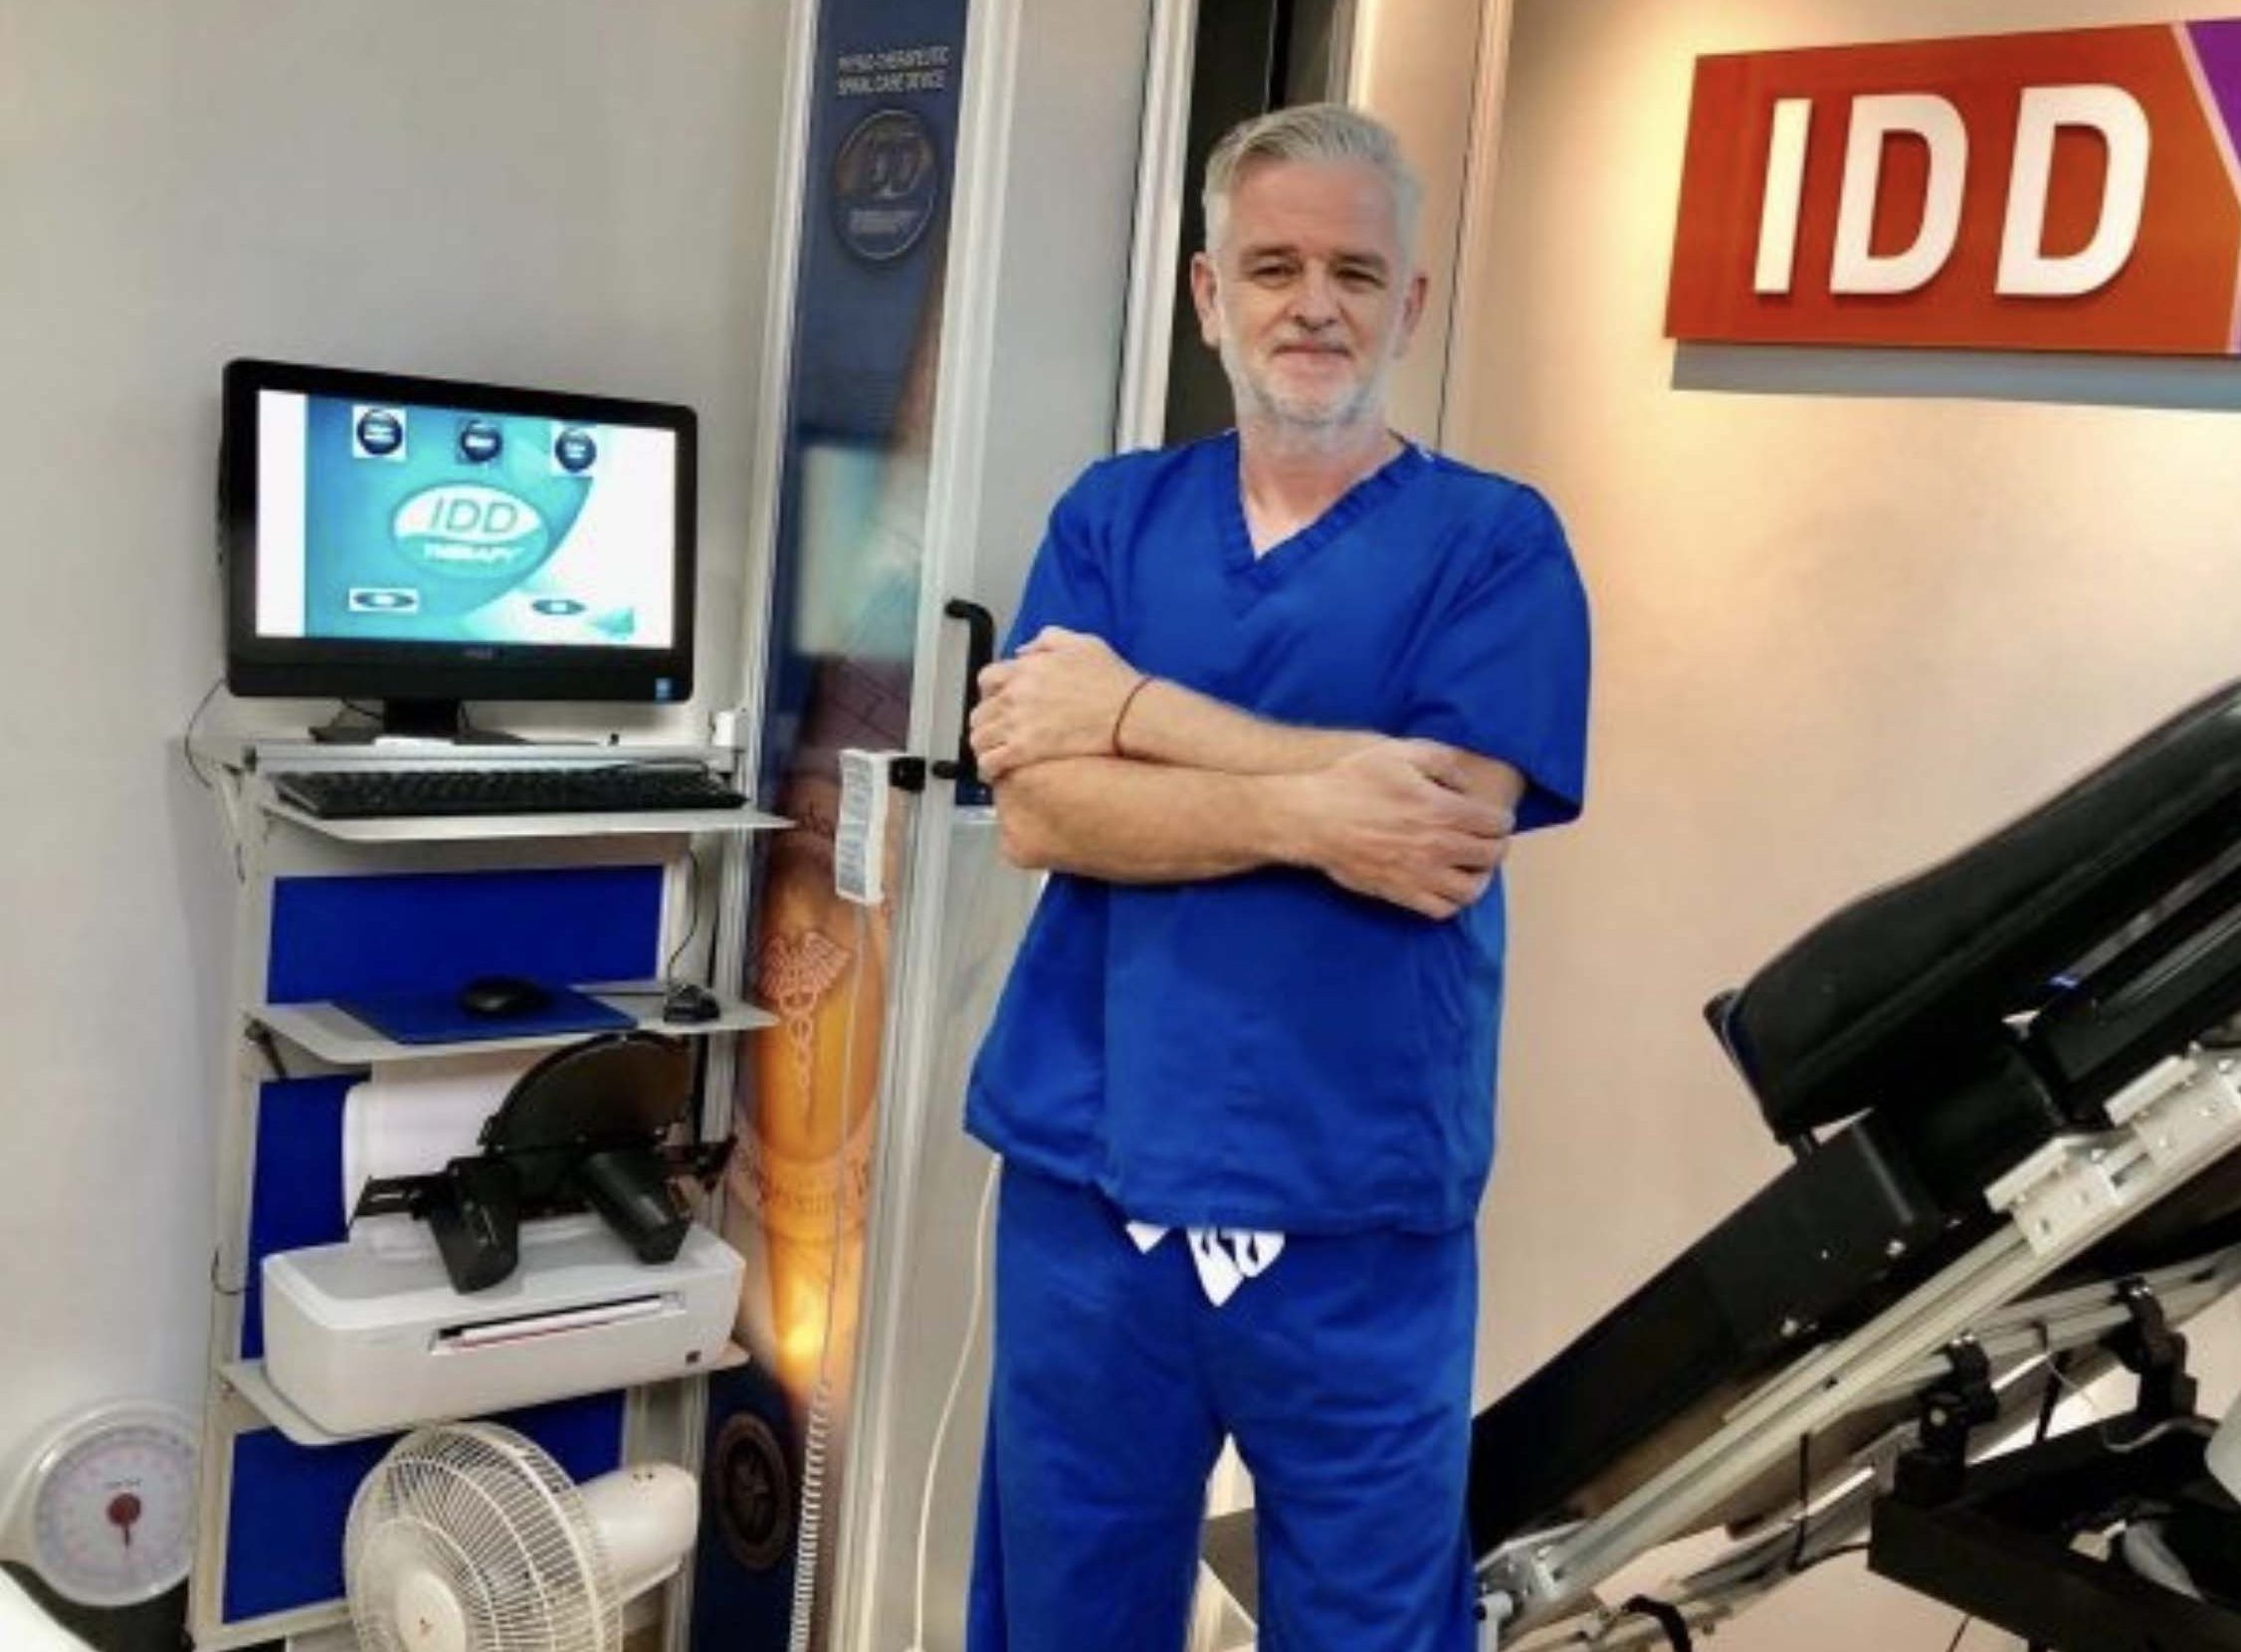 Tackling Unresolve Pain Article IDD Therapy Spinal Surgery News